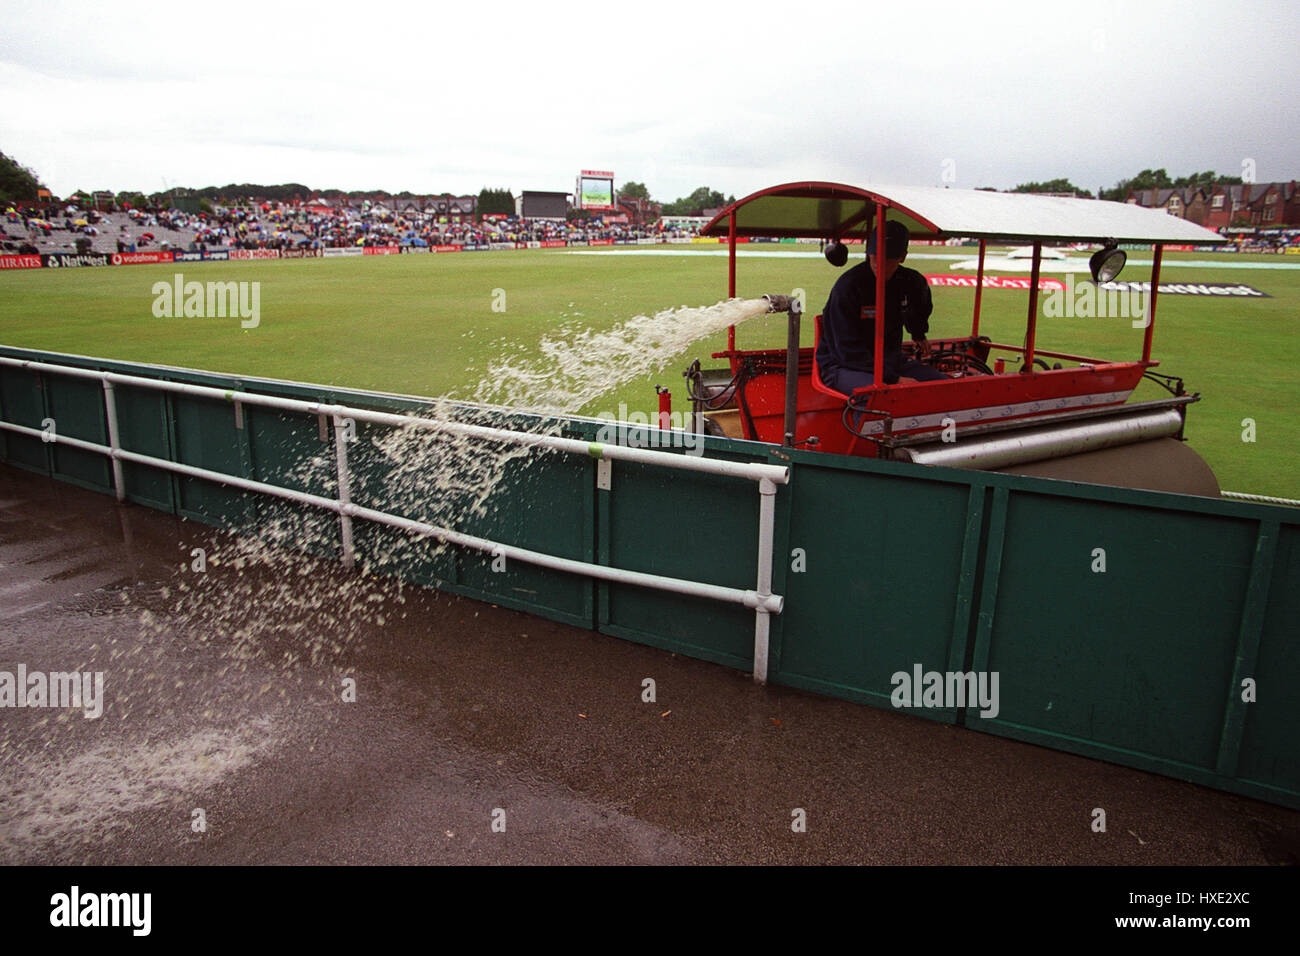 RAINWATER REMOVED FROM OUTFIED NEW ZEALAND V ZIMBABWE 06 June 1999 - Stock Image